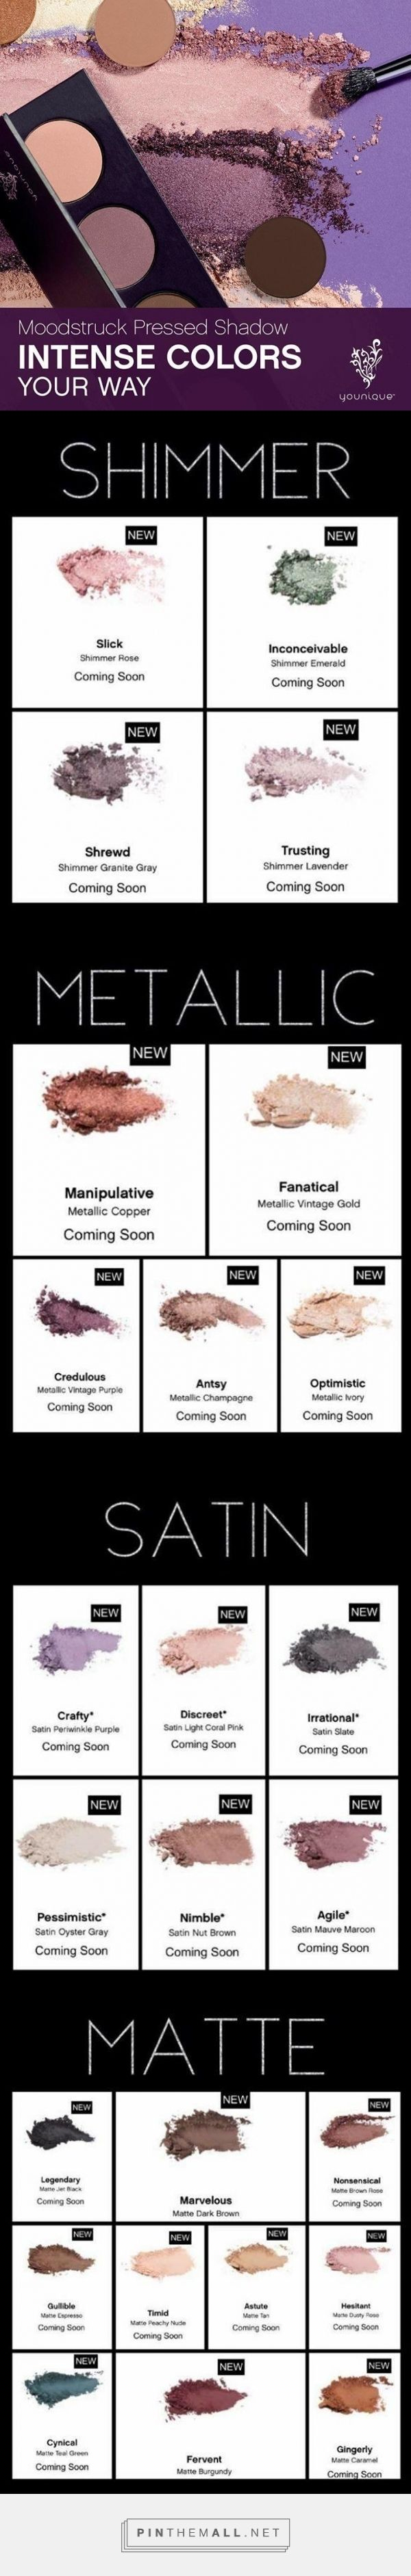 Coming September 1st!! Younique is going to be releasing CUSTOMIZABLE EyeShadow Palettes with 25 NEW Color choices!! Follow me @fb.com/SaschasGlitzAndGlam to stay up to date on other new releases coming soon!!